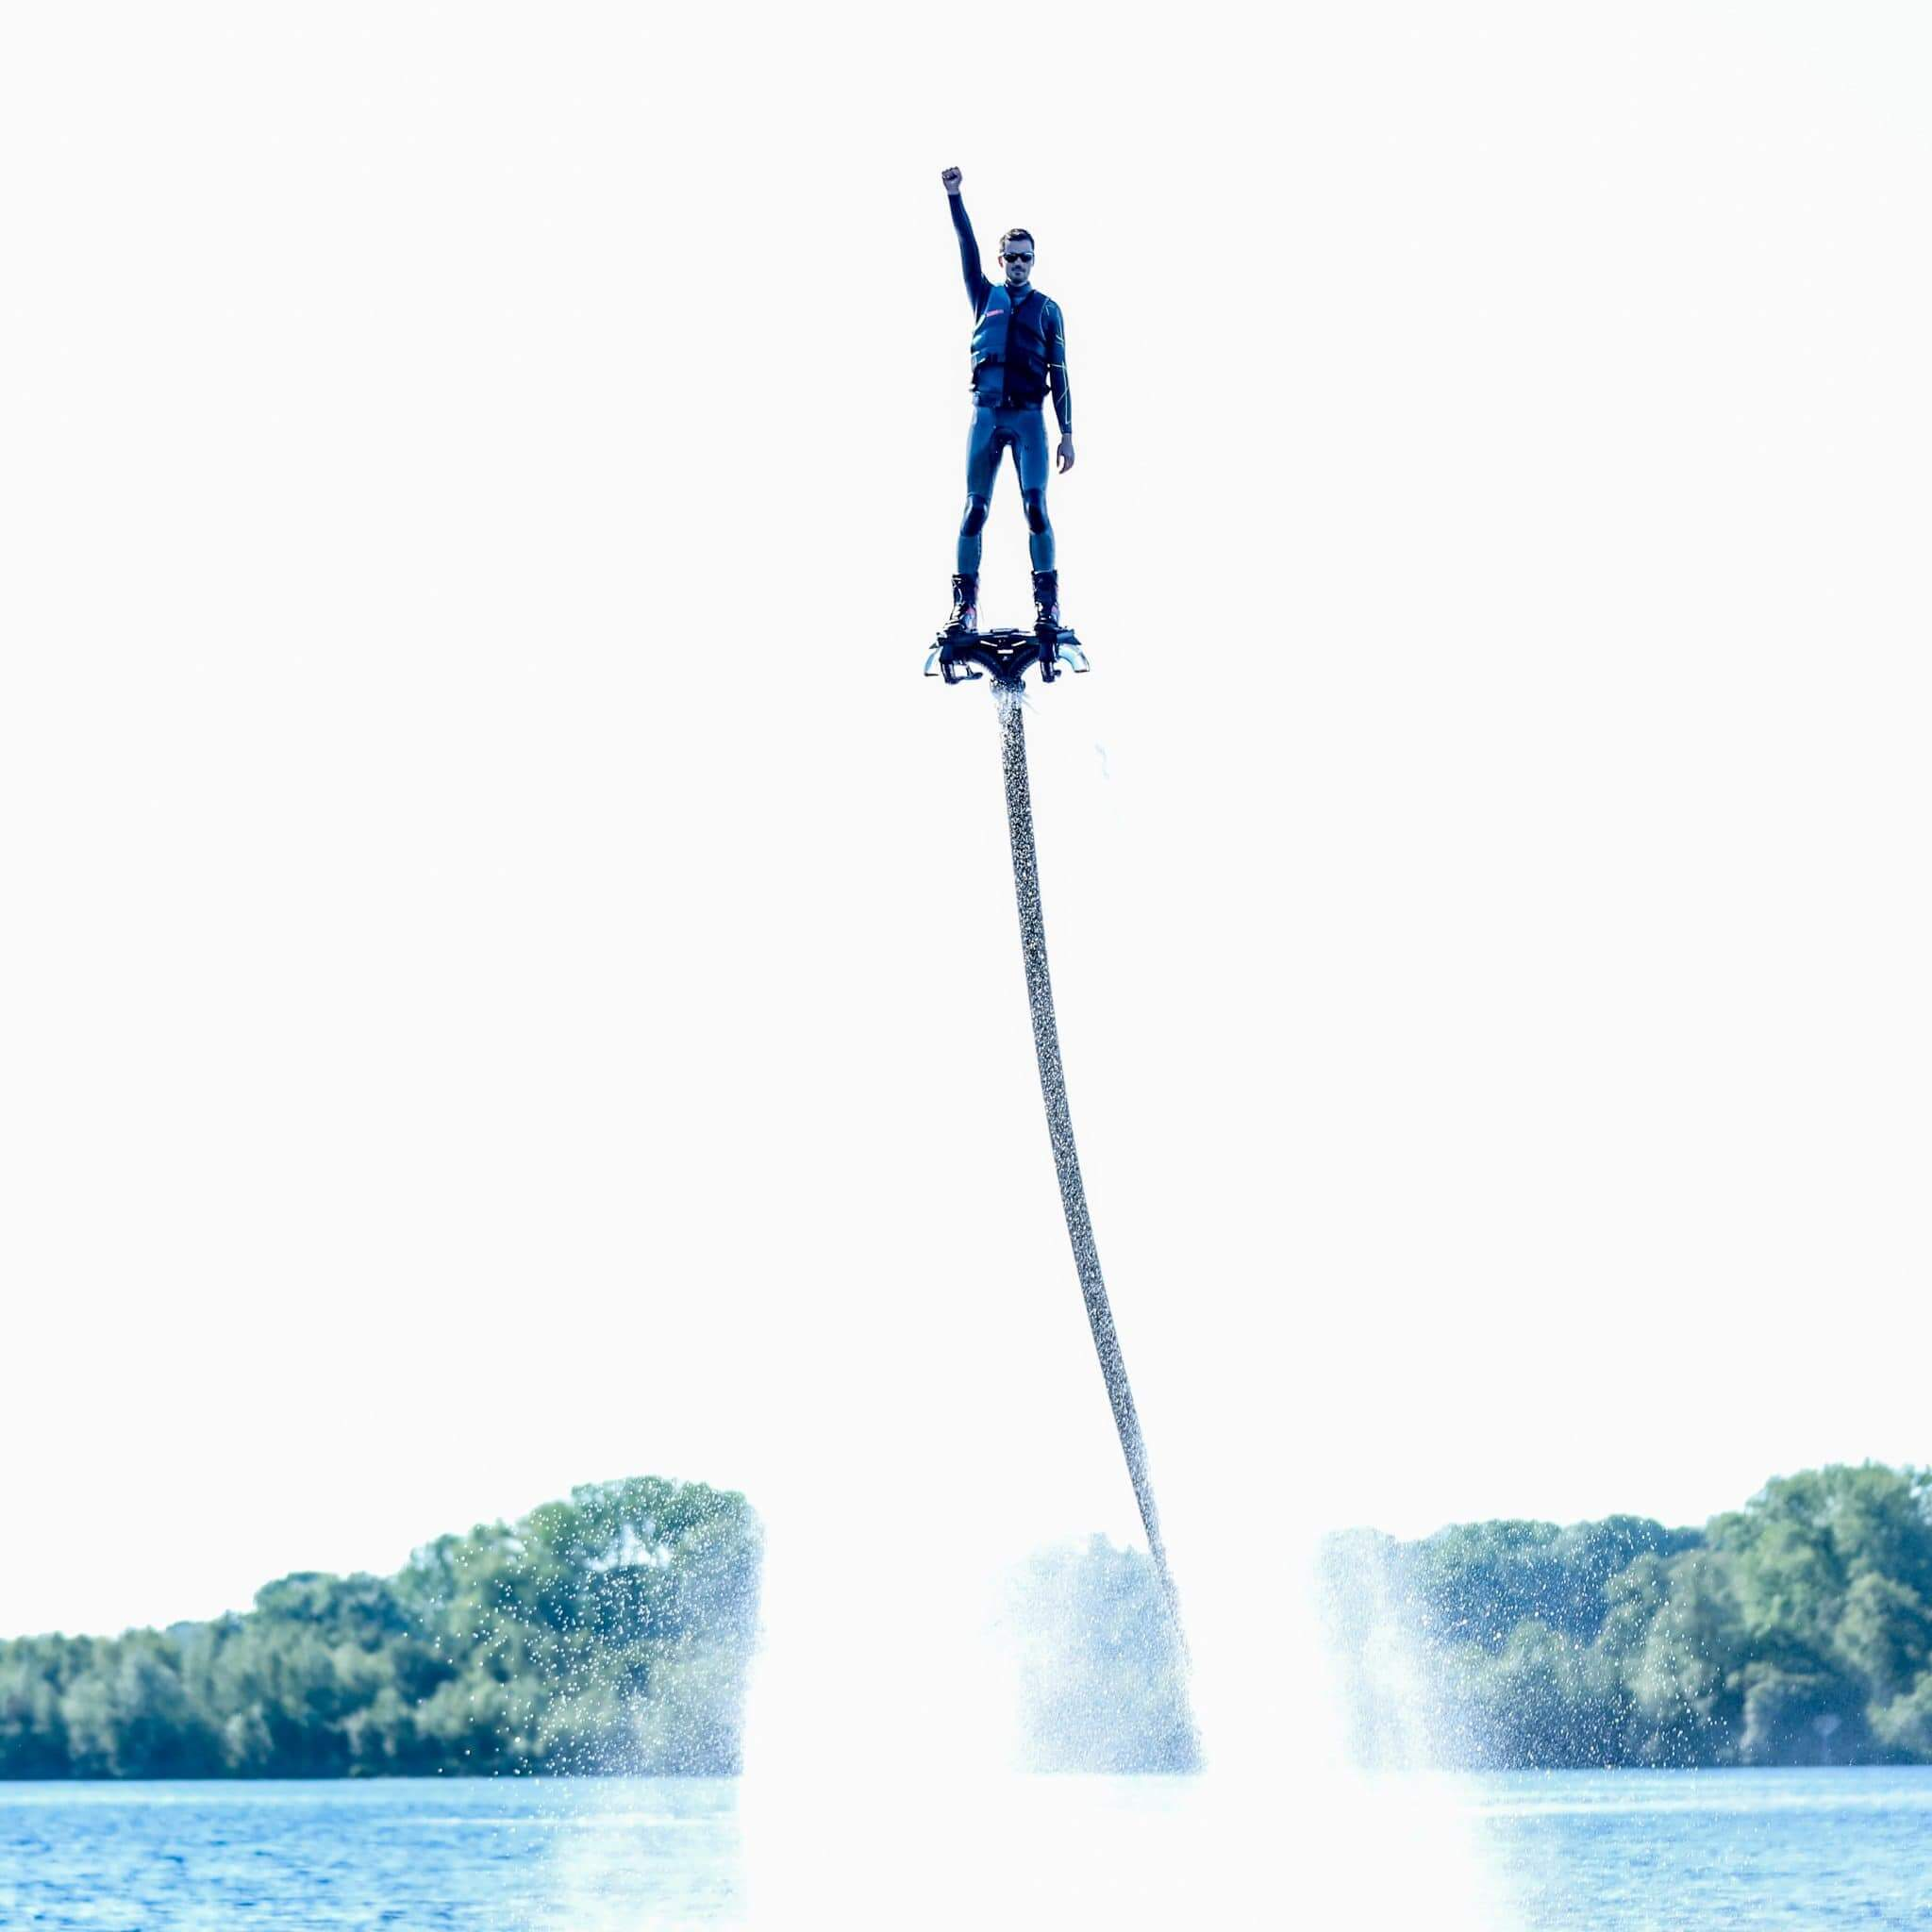 Flyboard shows